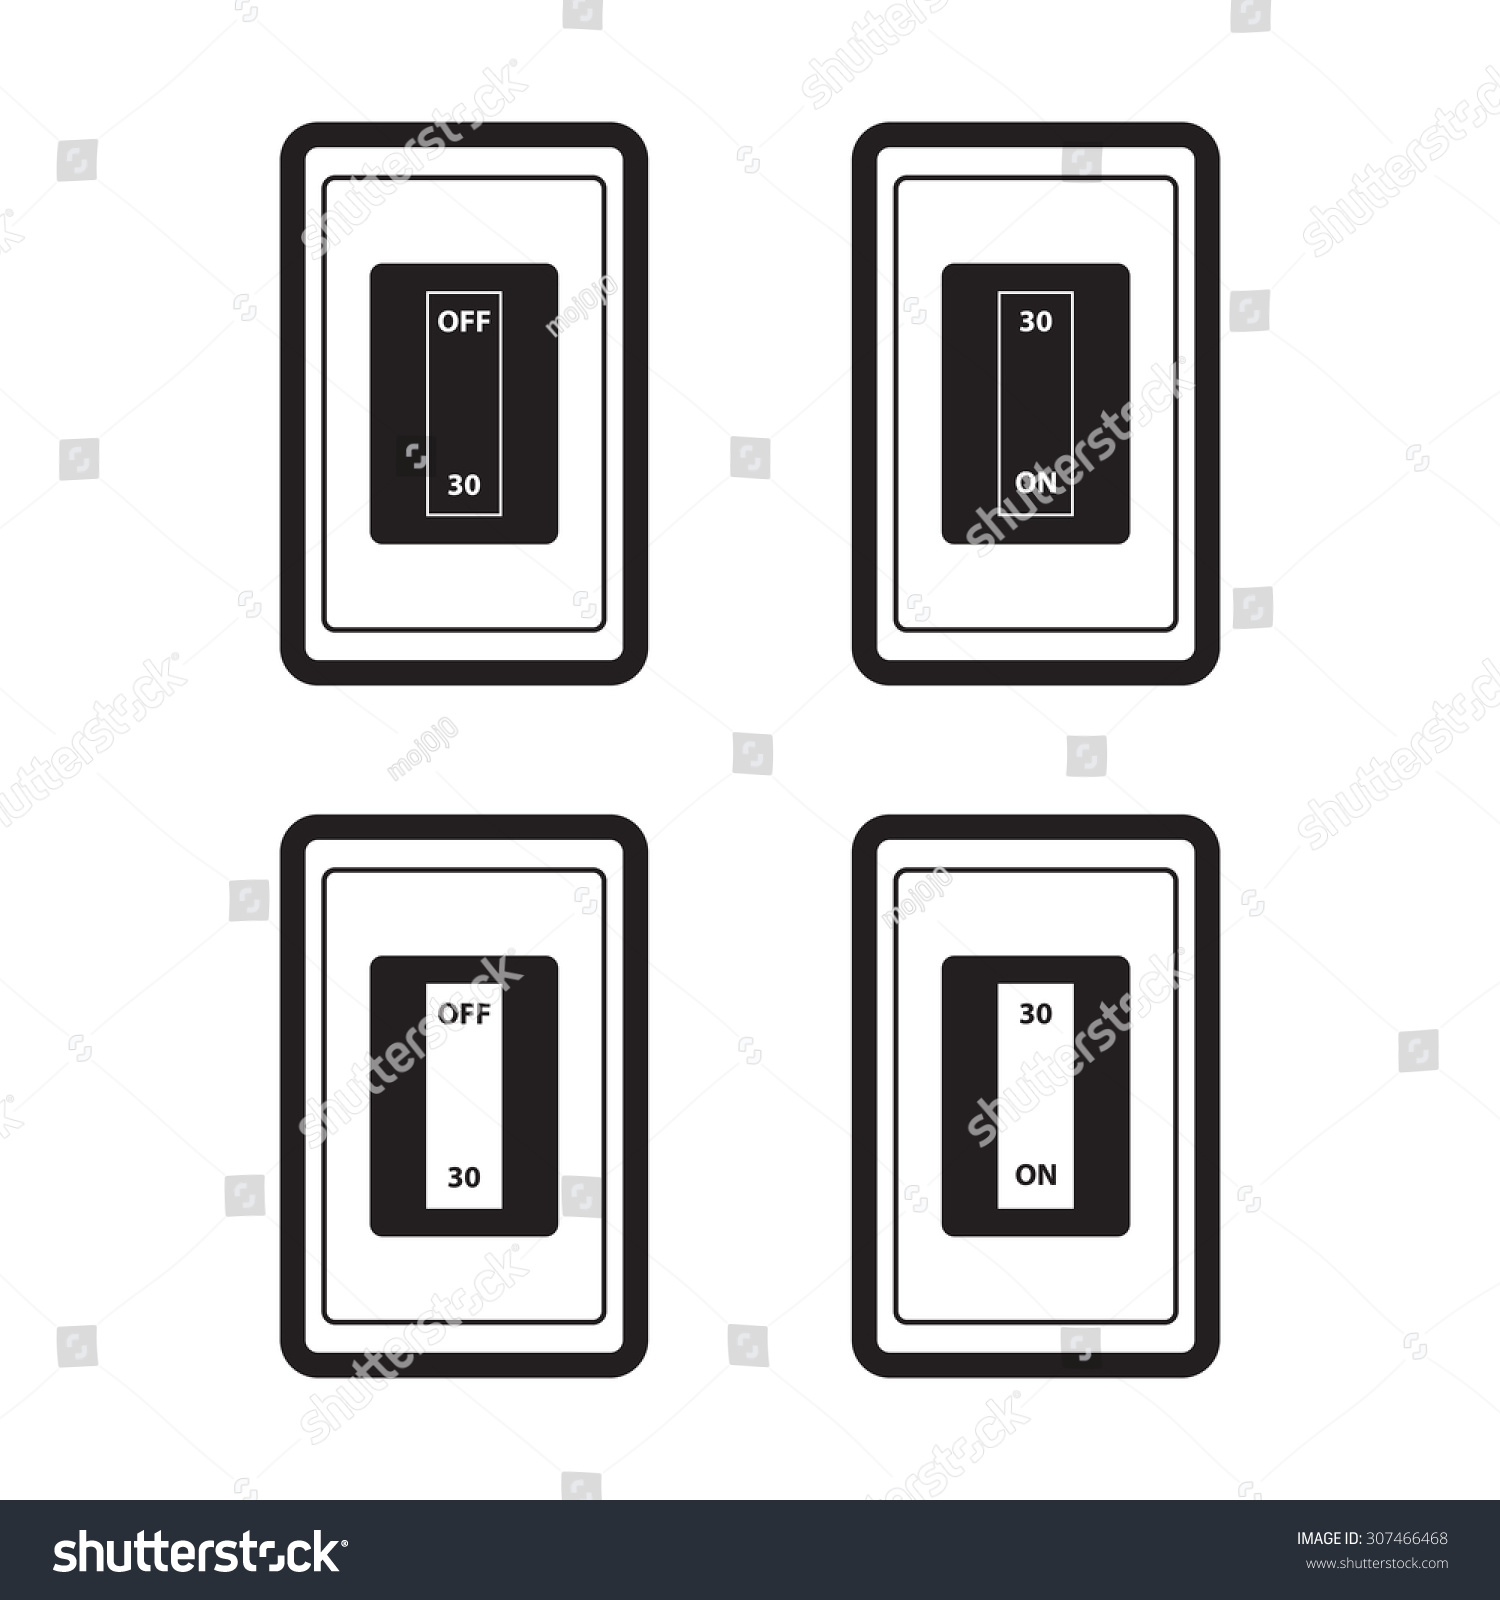 Home Circuit Breakers Icon Onoff Flat Stock Vector Royalty Free With On Off In Style